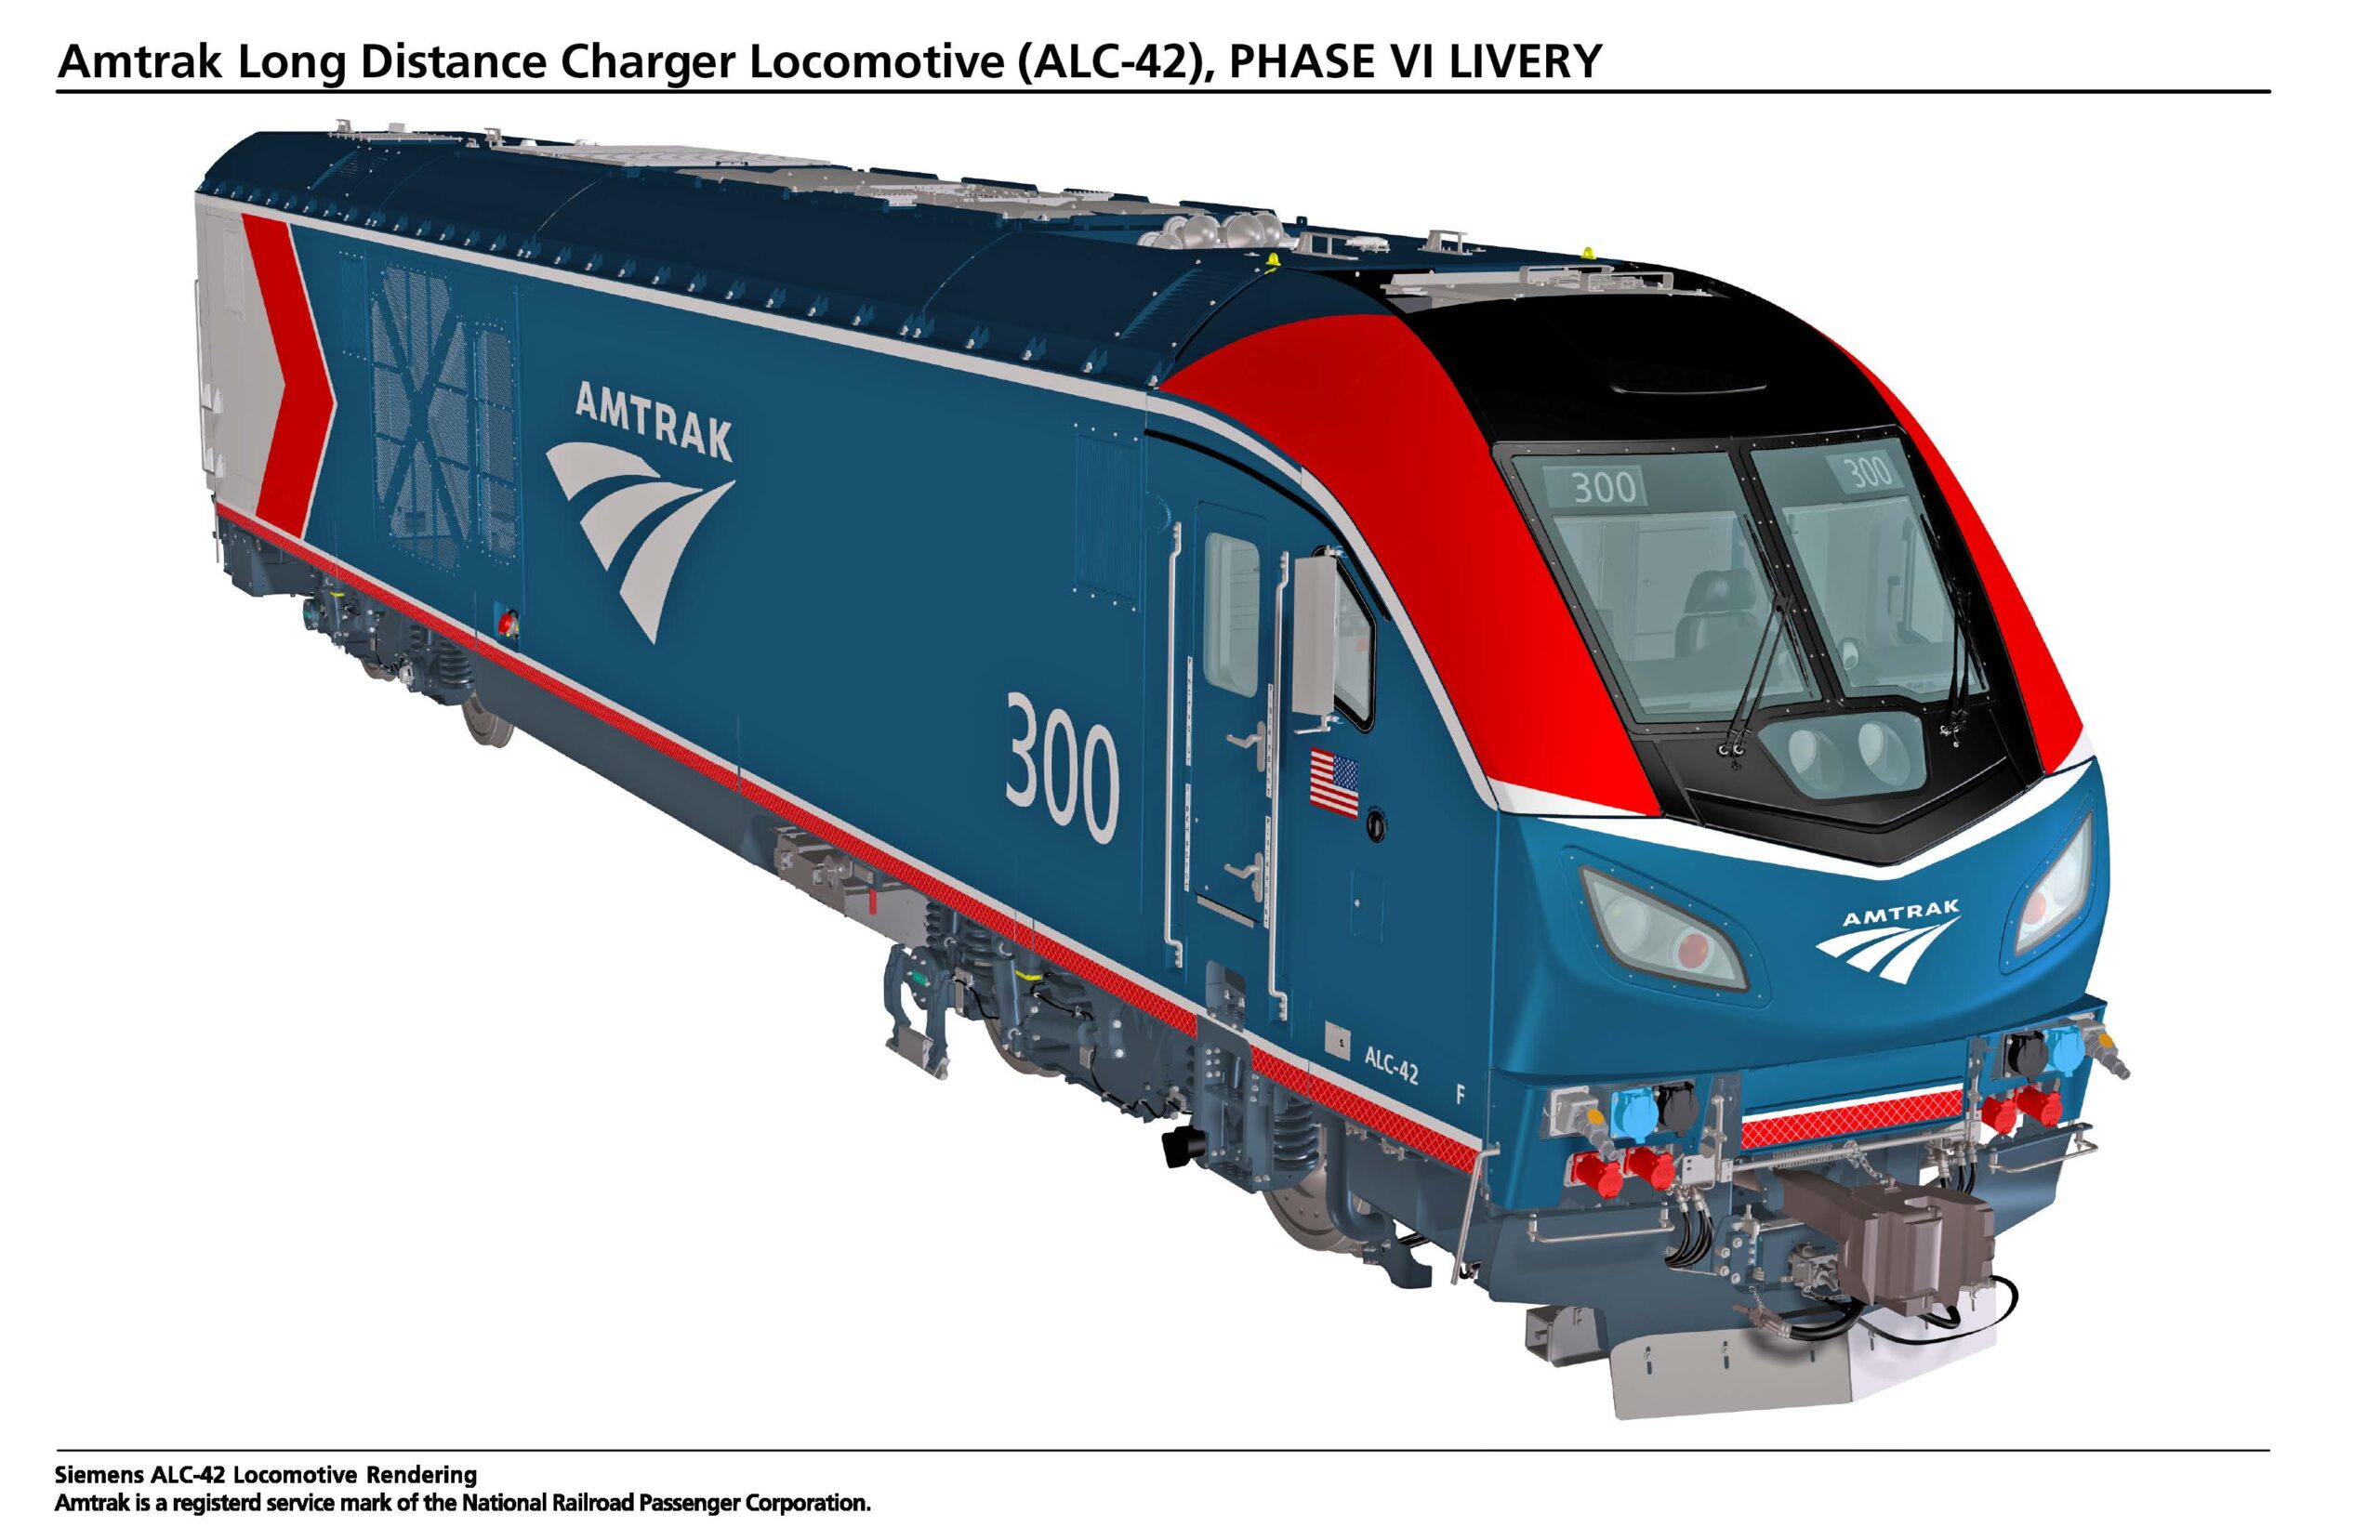 ALC-42 Siemens Charger diesel-electric locomotive for Amtrak